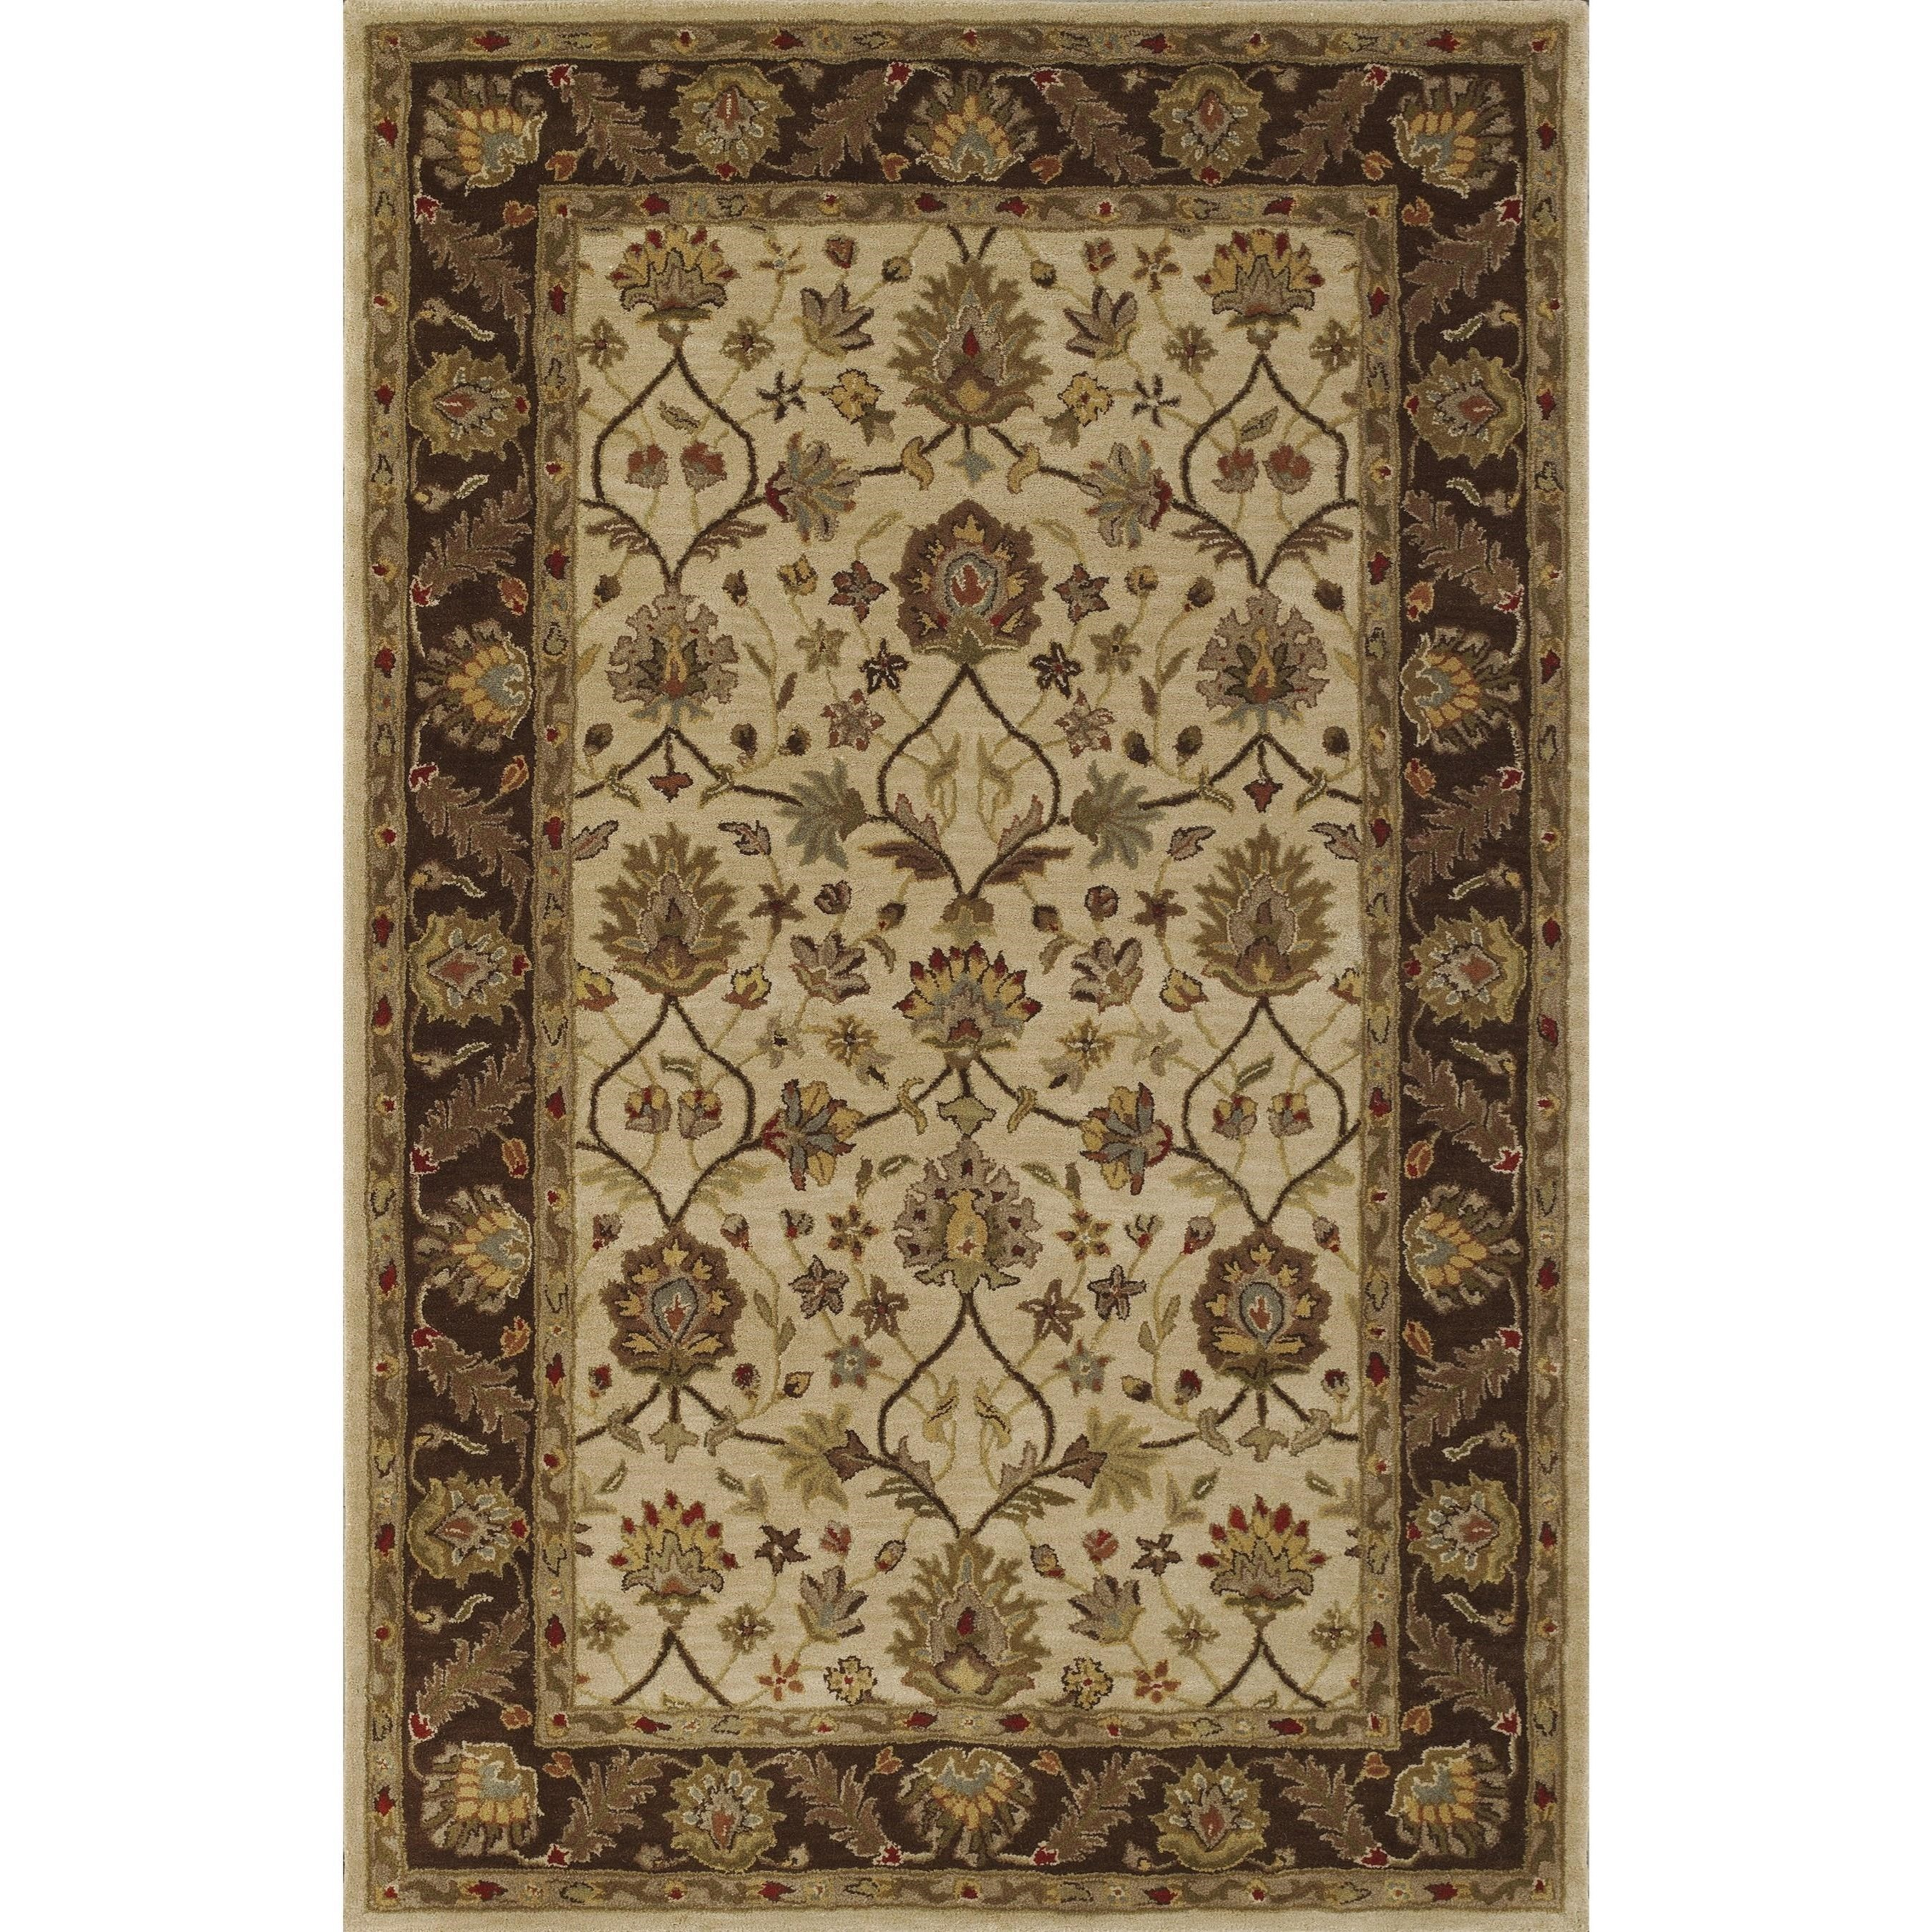 Jewel Ivory/Chocolate 5'X8' Rug by Dalyn at Fashion Furniture